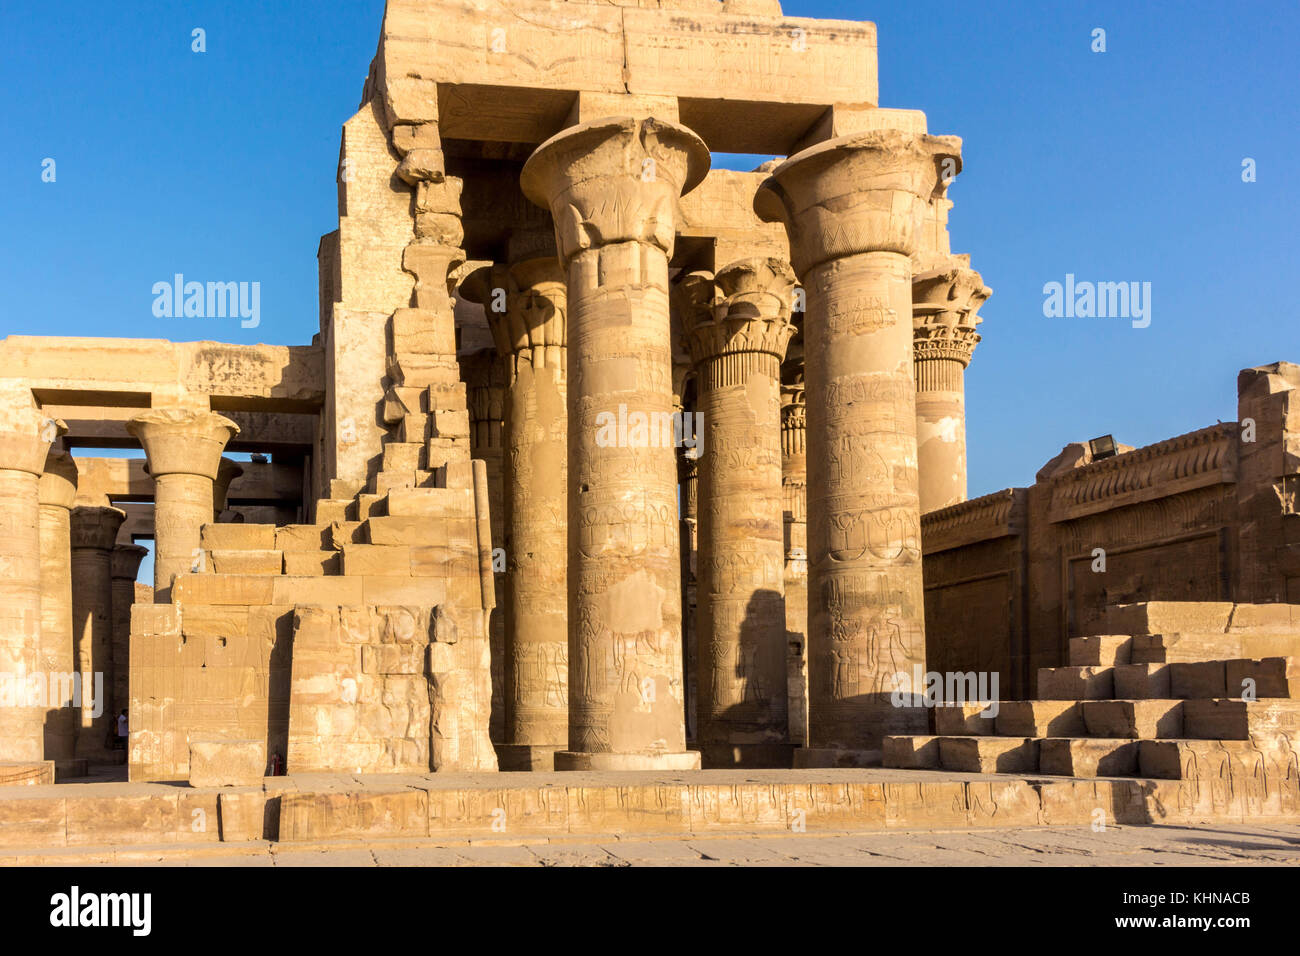 Egypt Temple in Luxor, Karnak, Edfu and Komombo - Stock Image